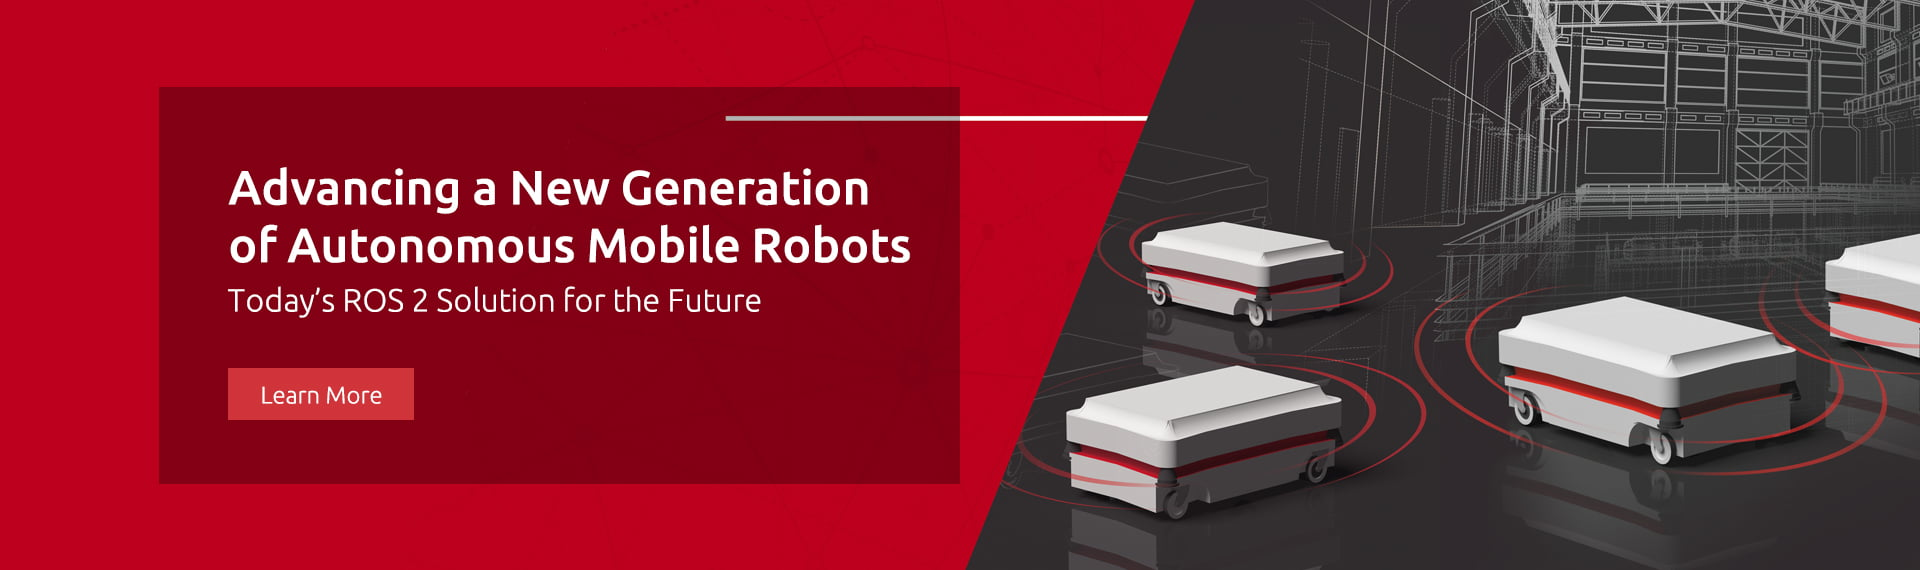 Advancing a new generation of autonomous mobile robots